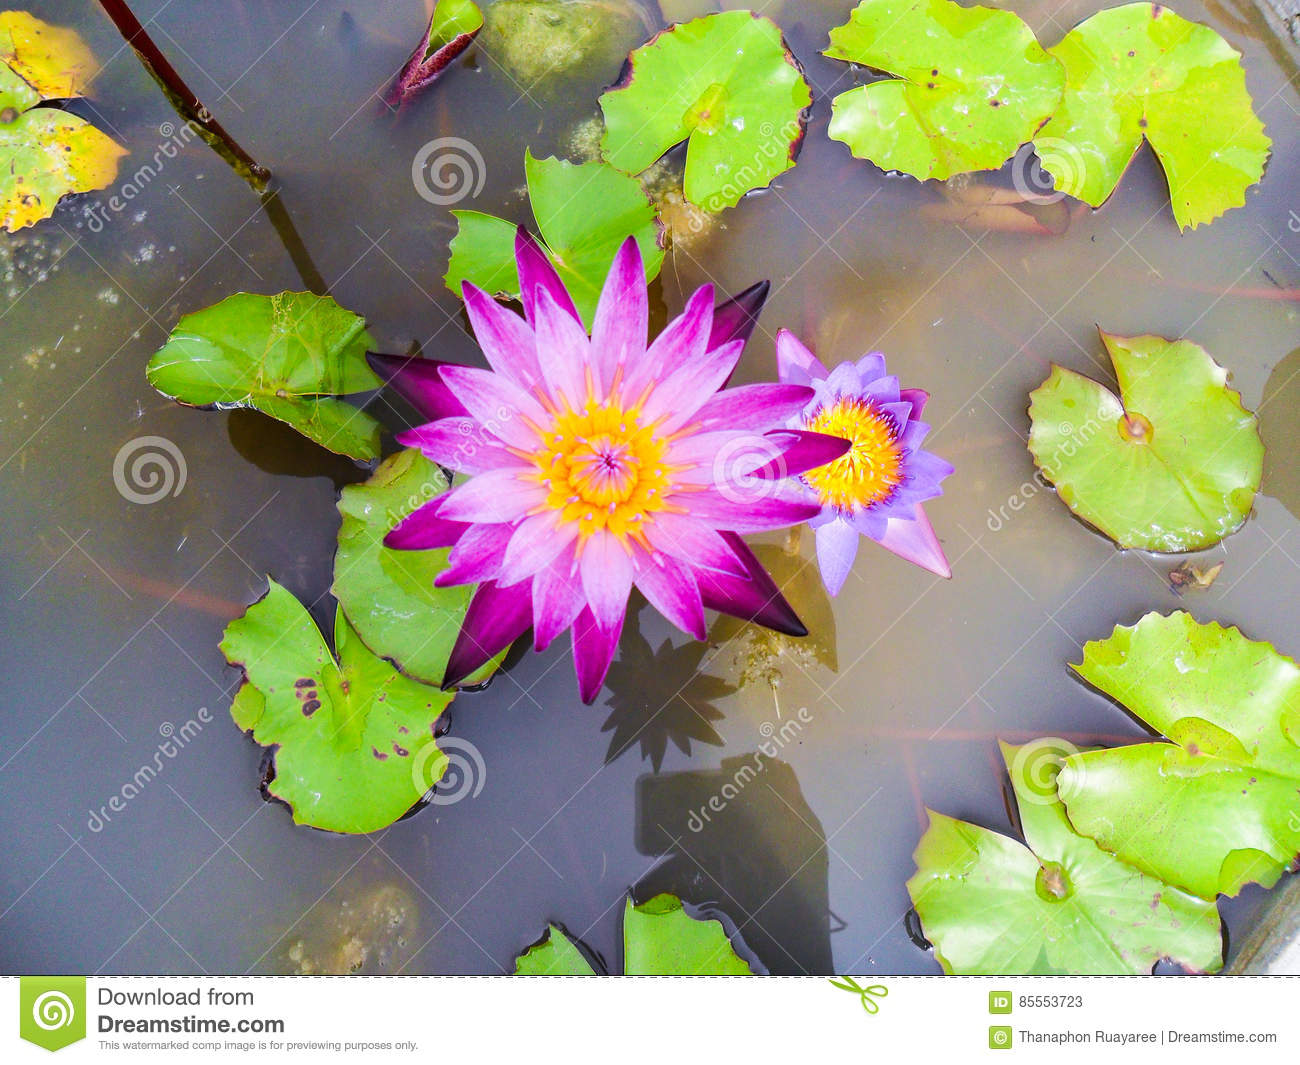 Lotus flower for buddhism stock image image of plant 85553723 download lotus flower for buddhism stock image image of plant 85553723 mightylinksfo